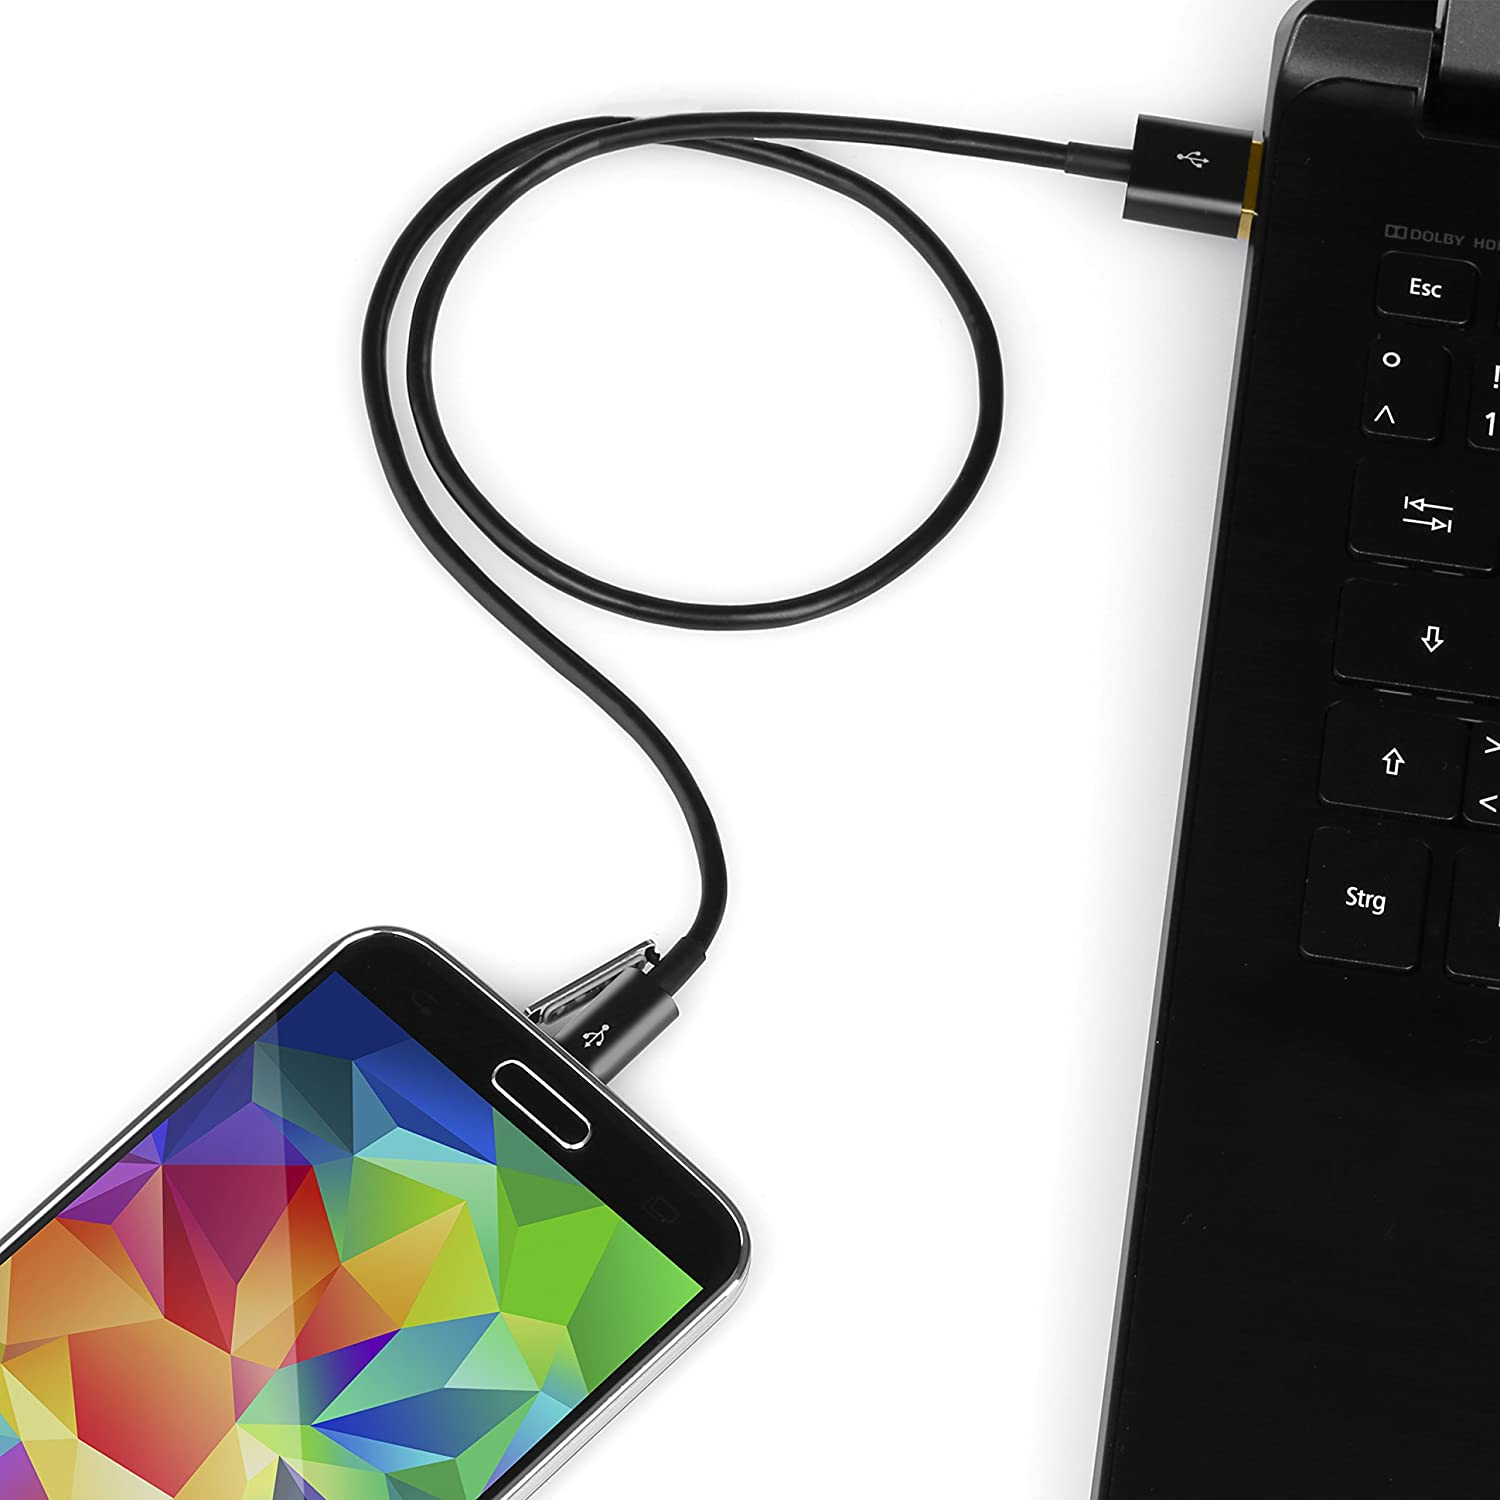 Csl 3m Premium Micro Usb To Cable Datasync Charging Carger Samsung Galaxy Charger Android I9000 I 9000 Smartphone Smart Phone Young V J1 J2 J3 J5 For Htc Motorola Nokia Lg Hp Sony Blackberry